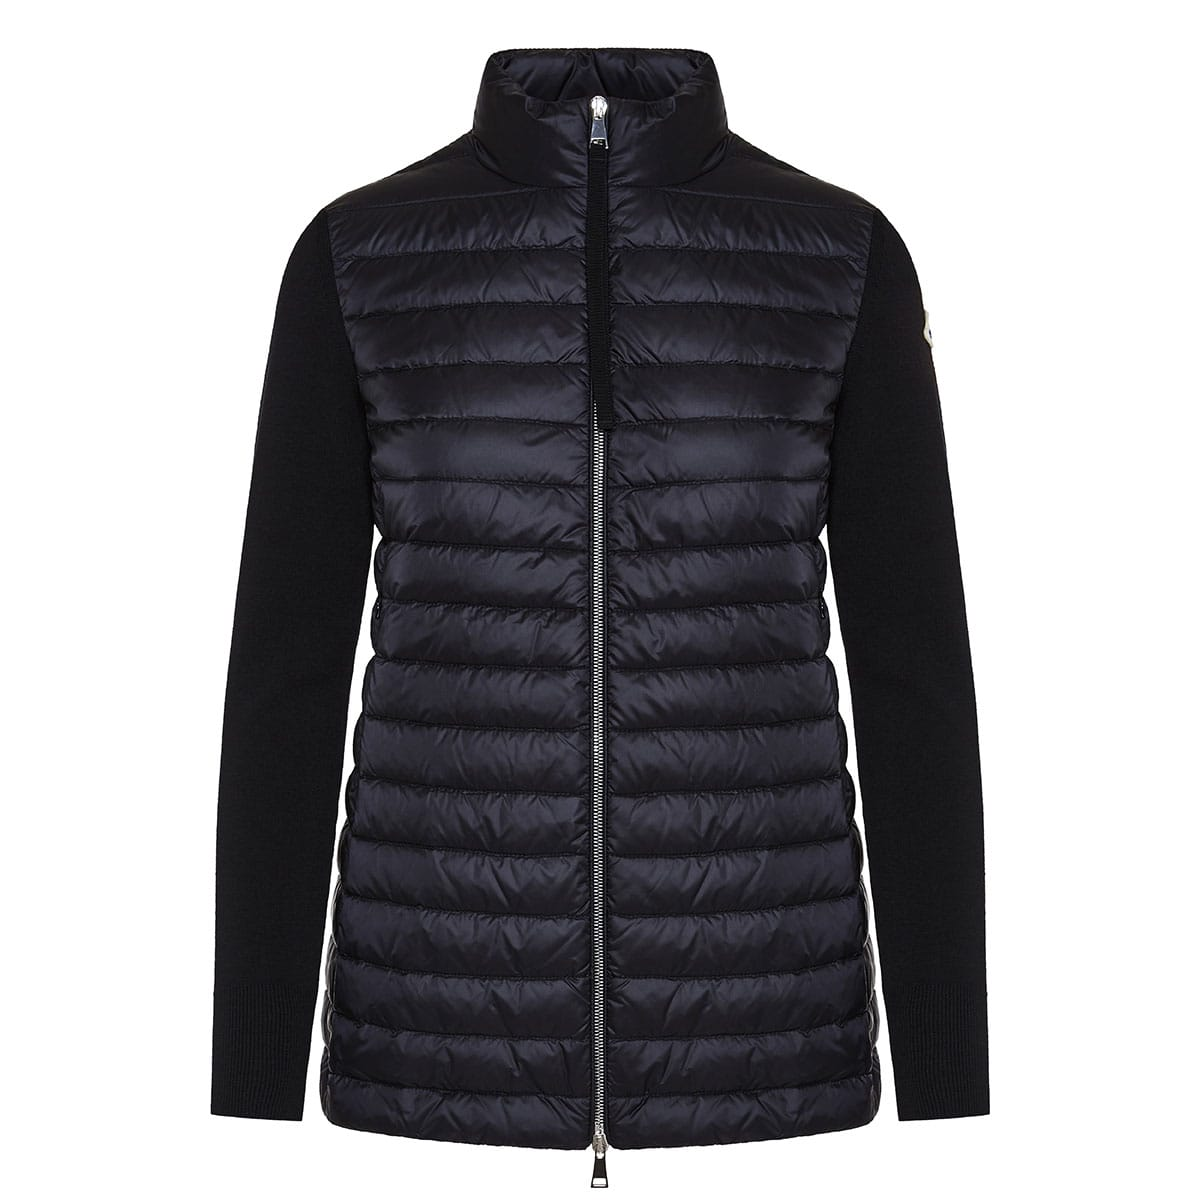 Puffer jacket with knitted sleeves